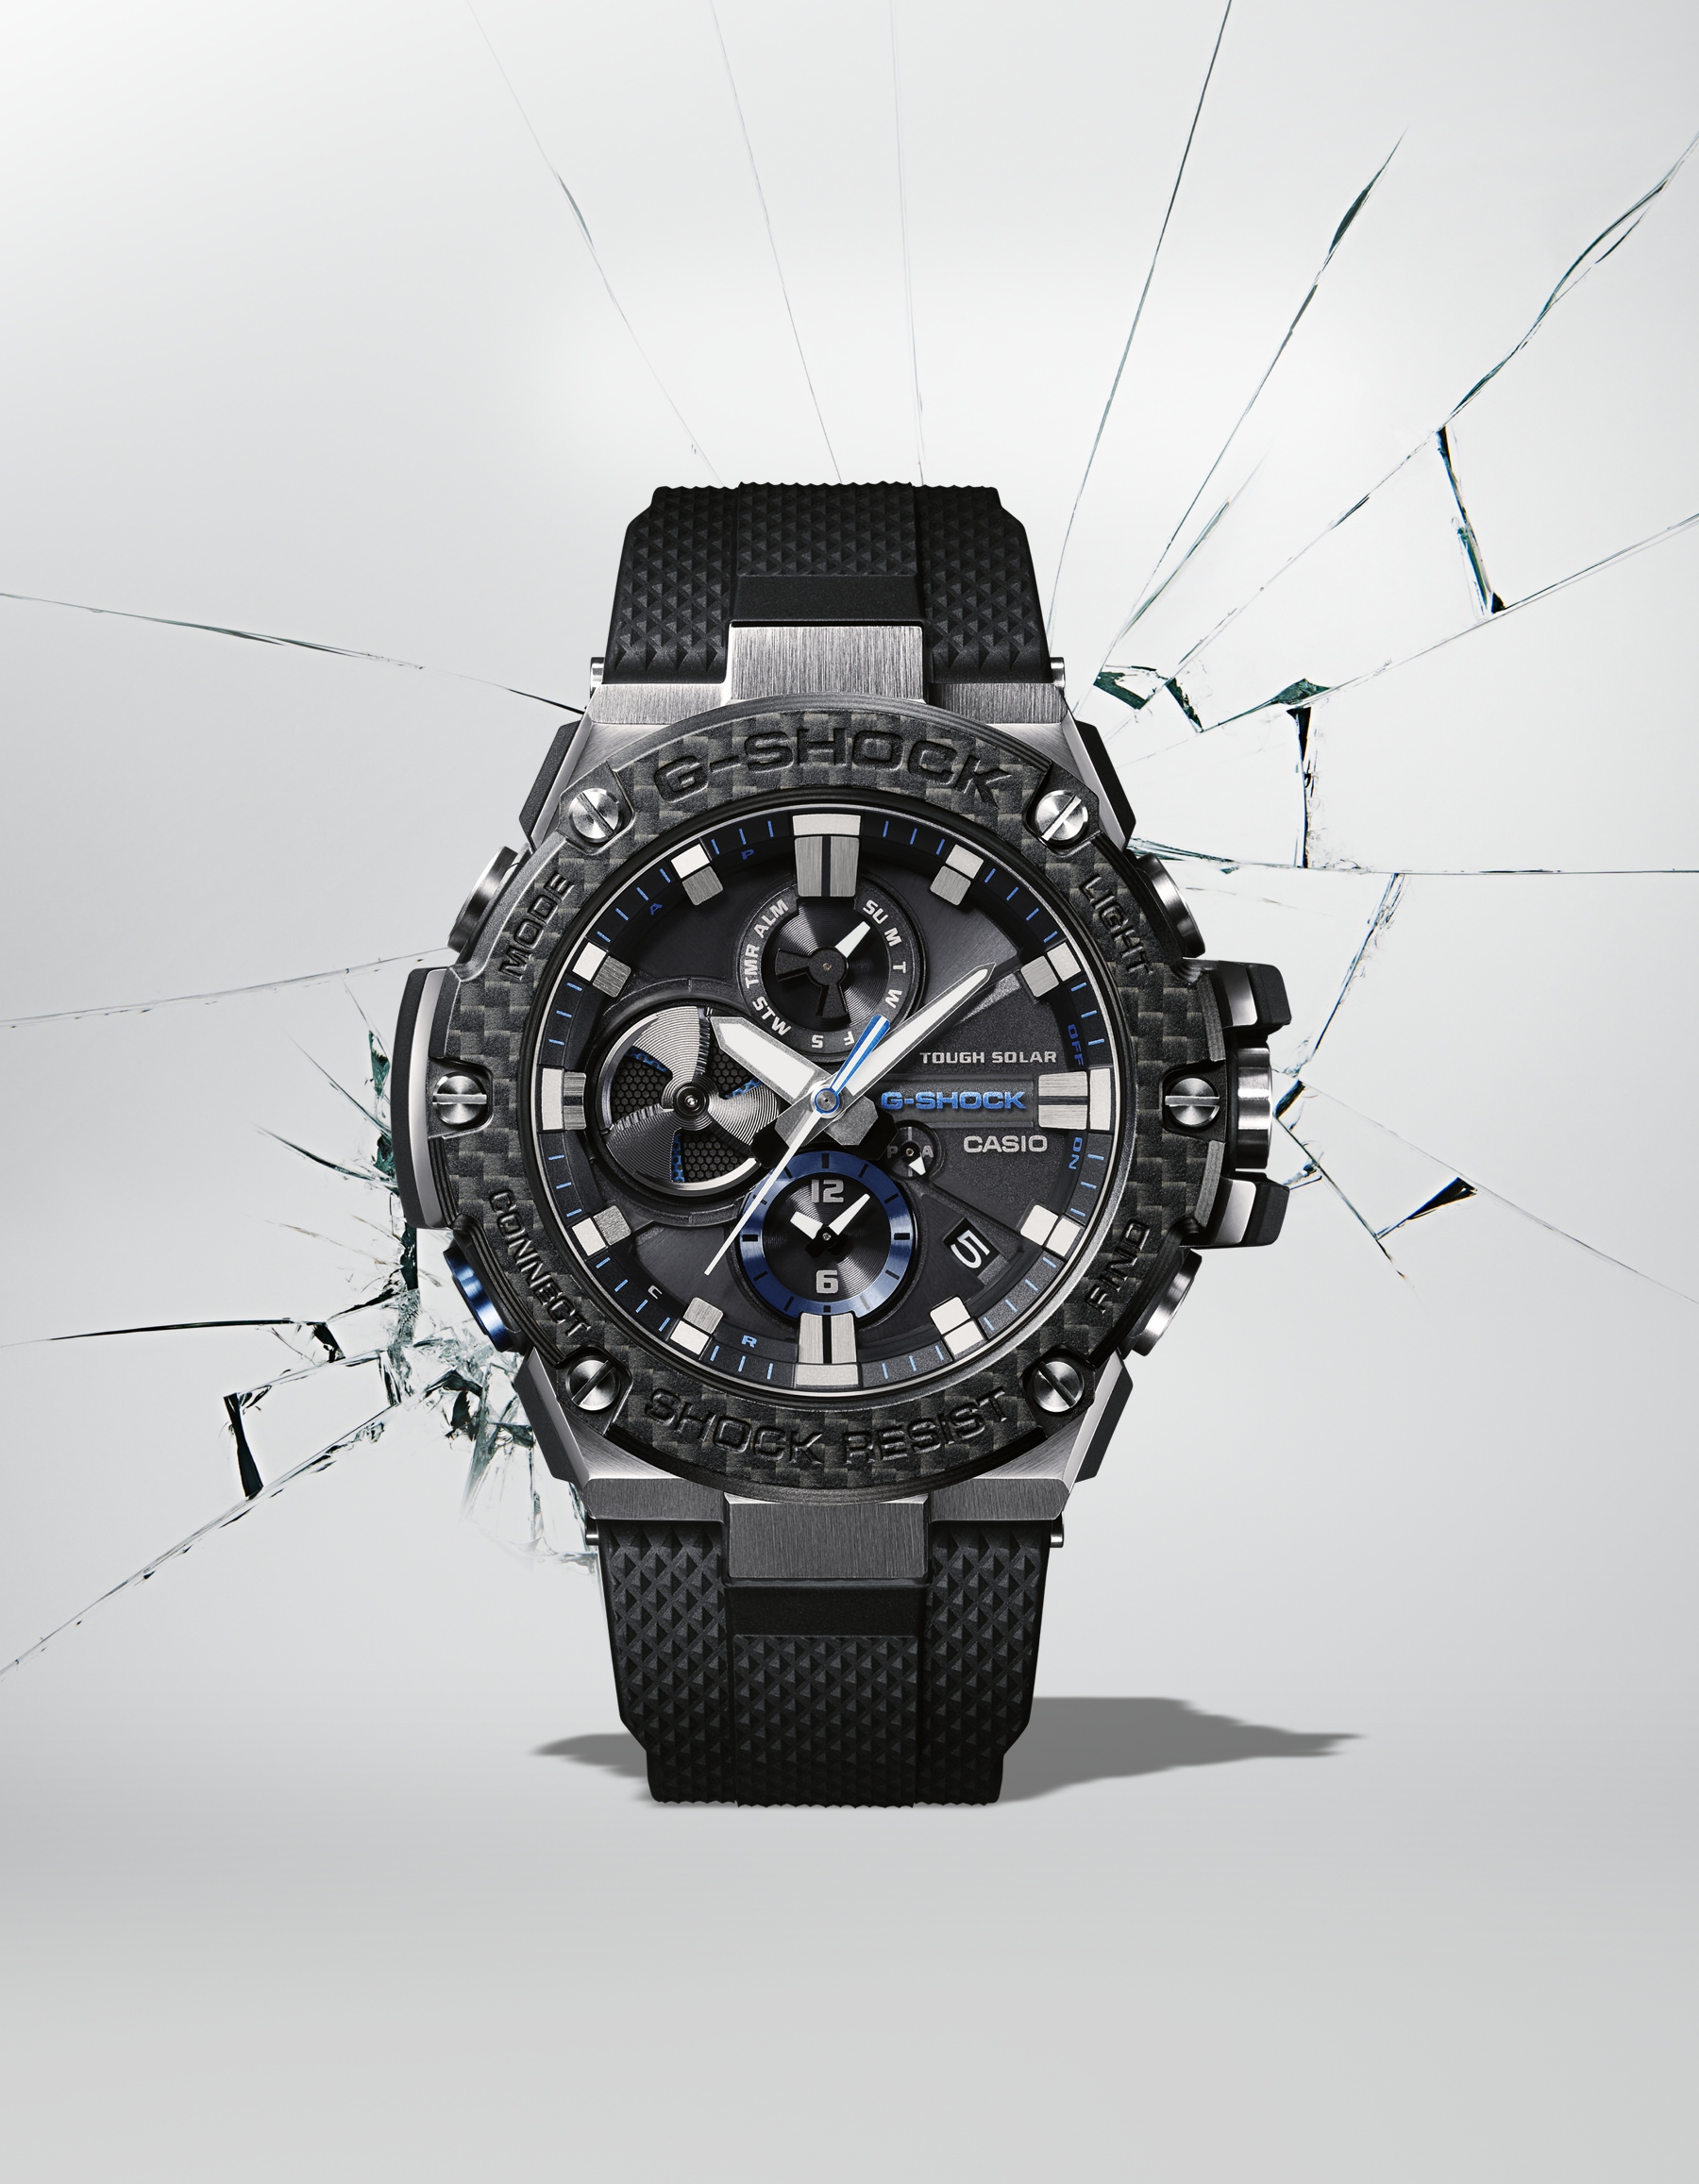 The G-SHOCK G-STEEL GSTB100XA-1A timepiece for men